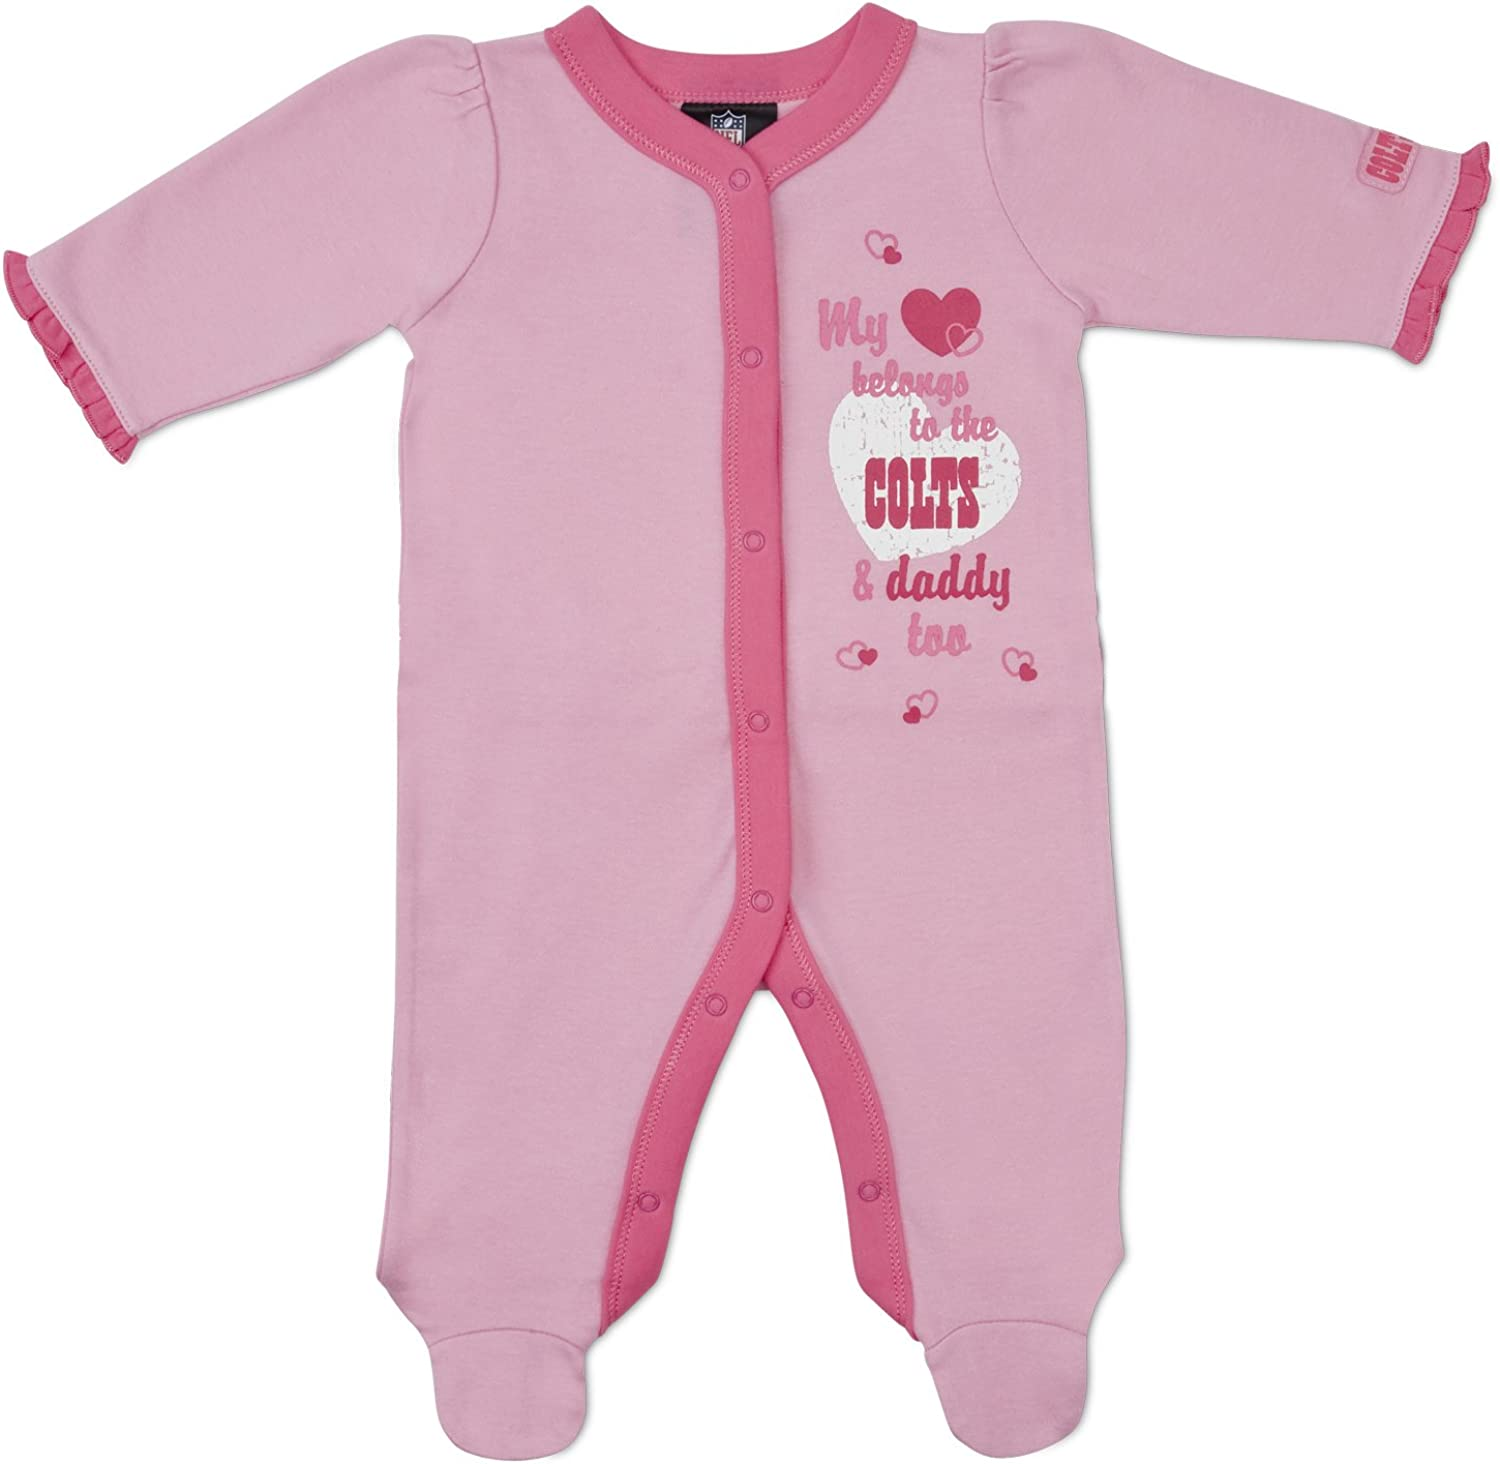 NFL Industry All stores are sold No. 1 Indianapolis Colt Infant Bodysuit Sleep-N-Play